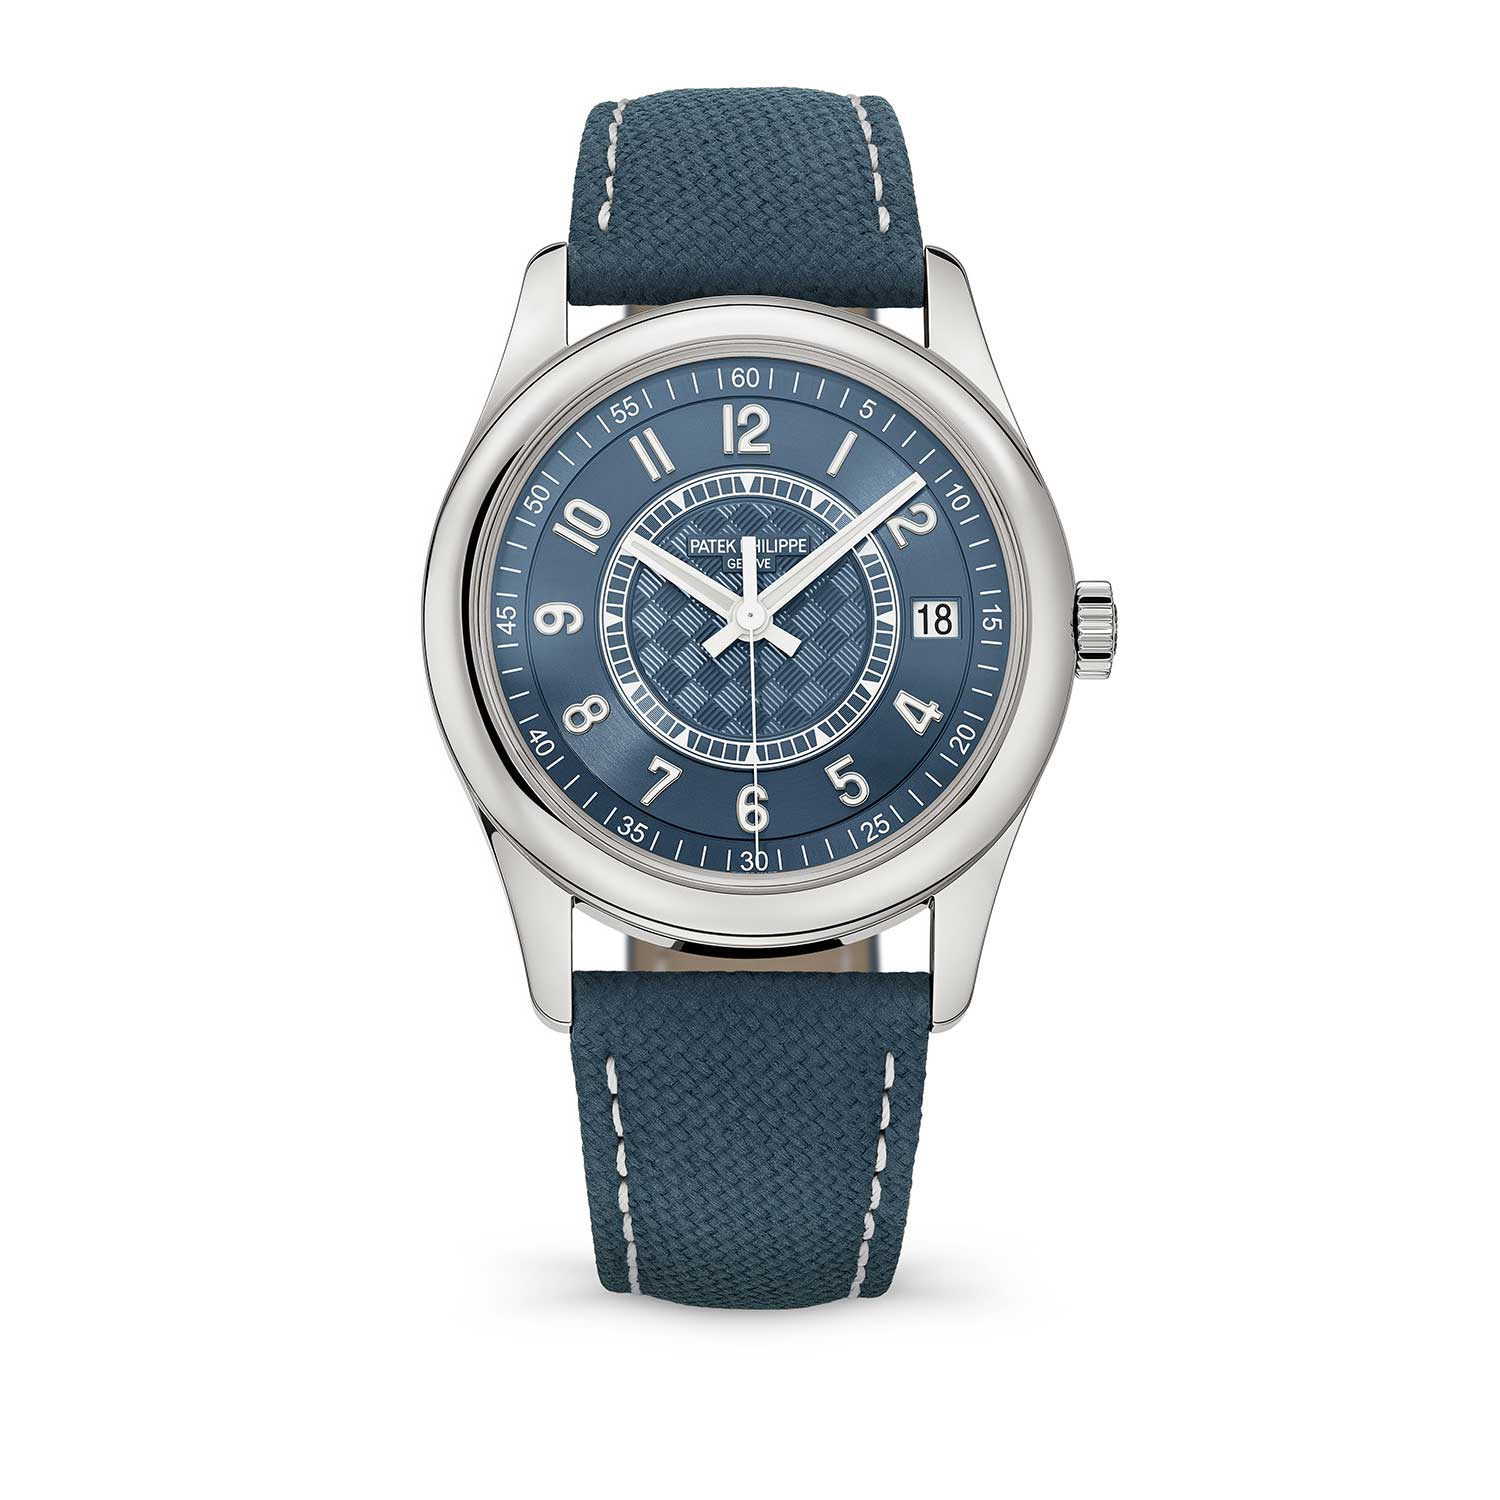 Reference 6007A-001 Calatrava created in celebration of Patek Philippe's new manufacture building in 2020